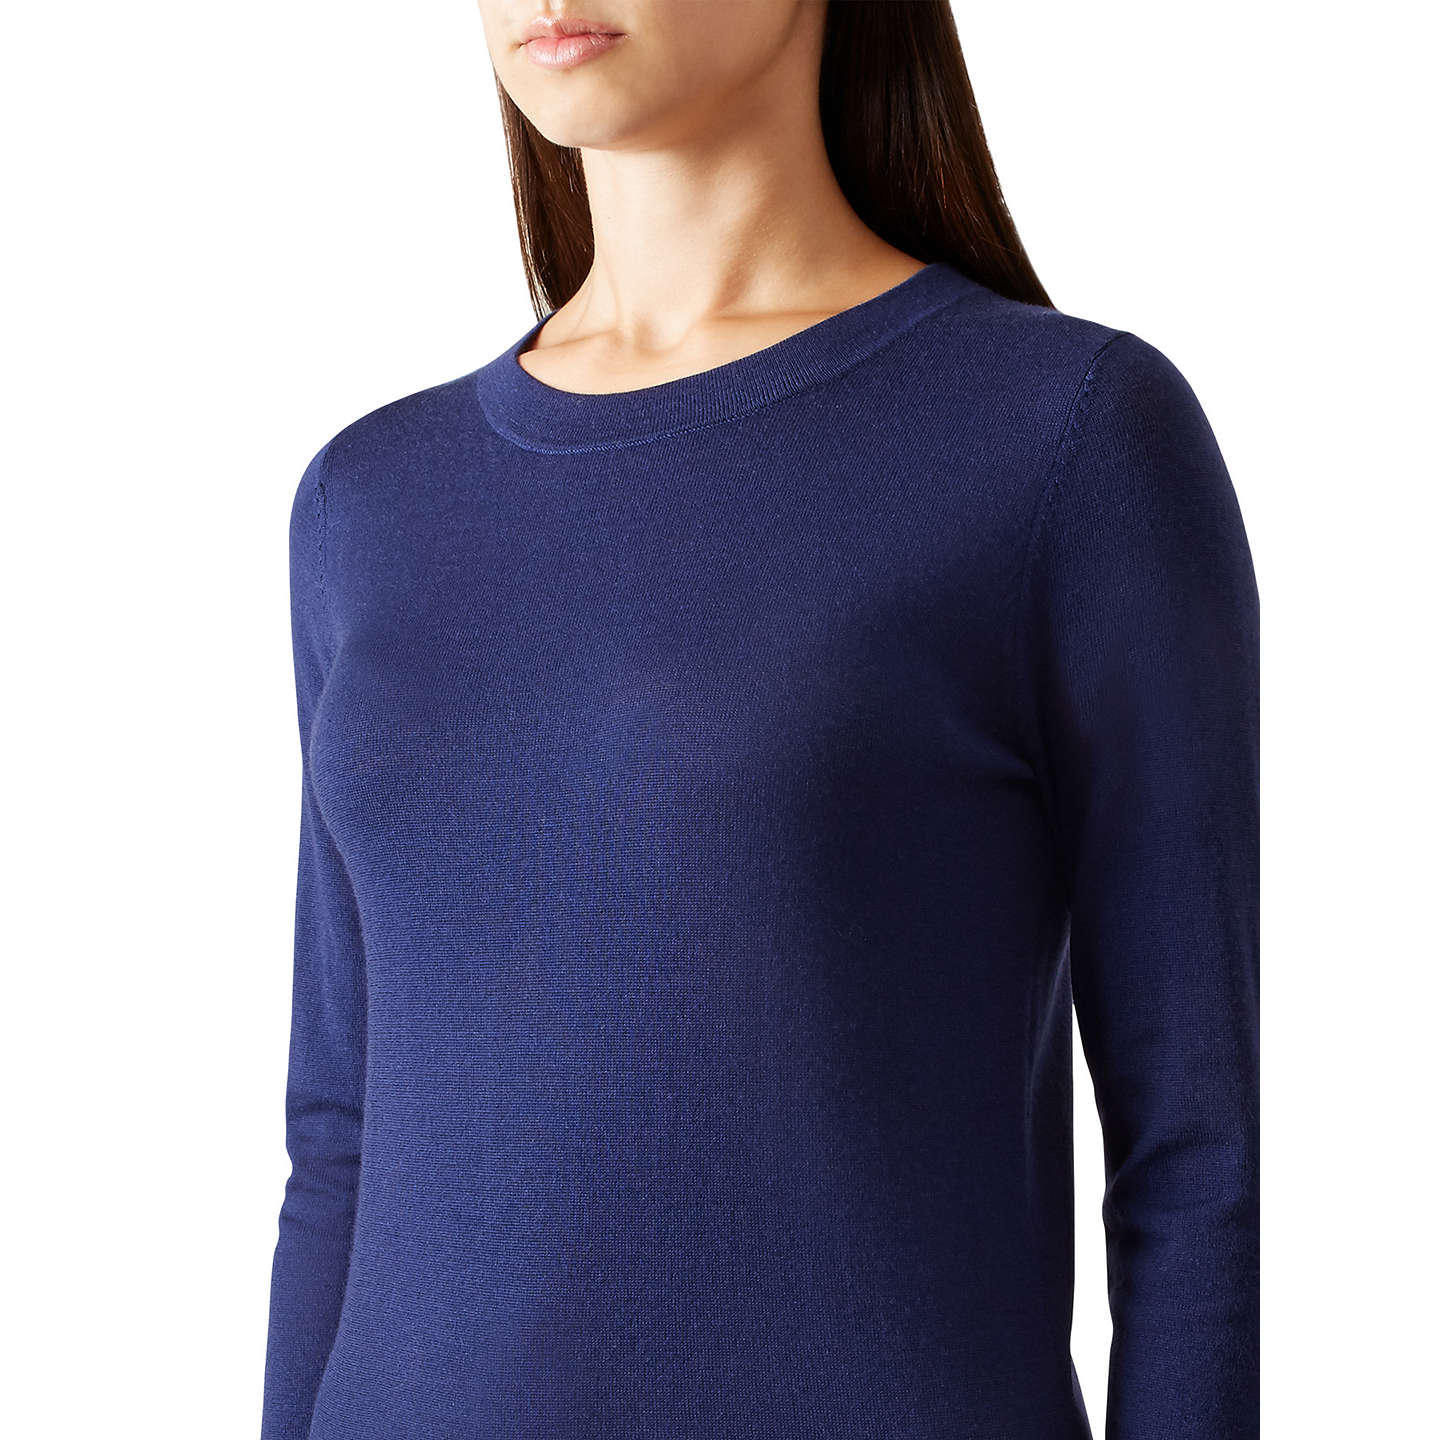 BuyHobbs Penny Knitted Sweater, Navy, XS Online at johnlewis.com